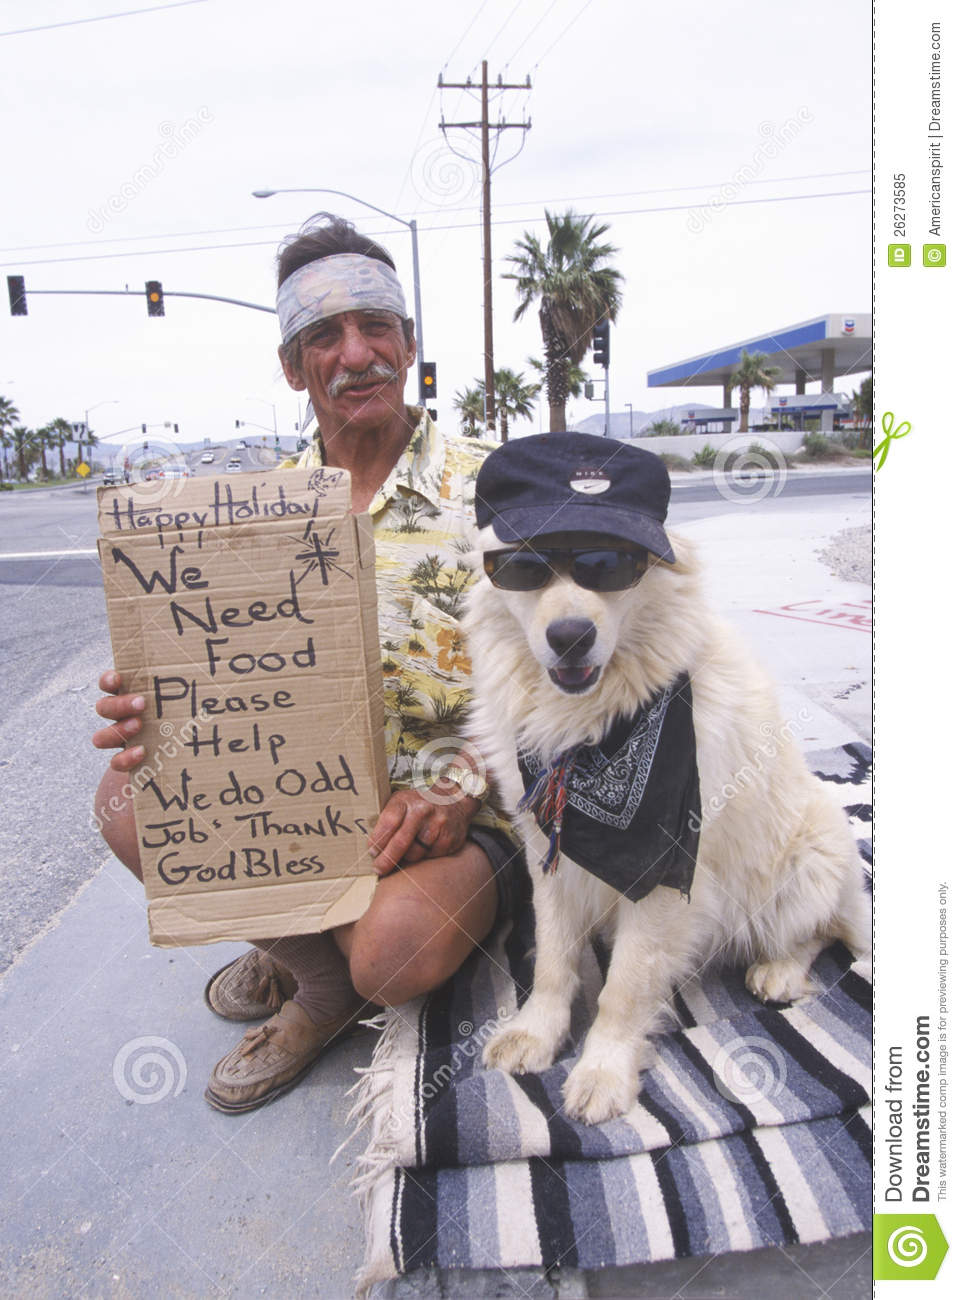 A Man And His Dog >> A Homeless Man And His Dog Editorial Image Image Of Sign 26273585